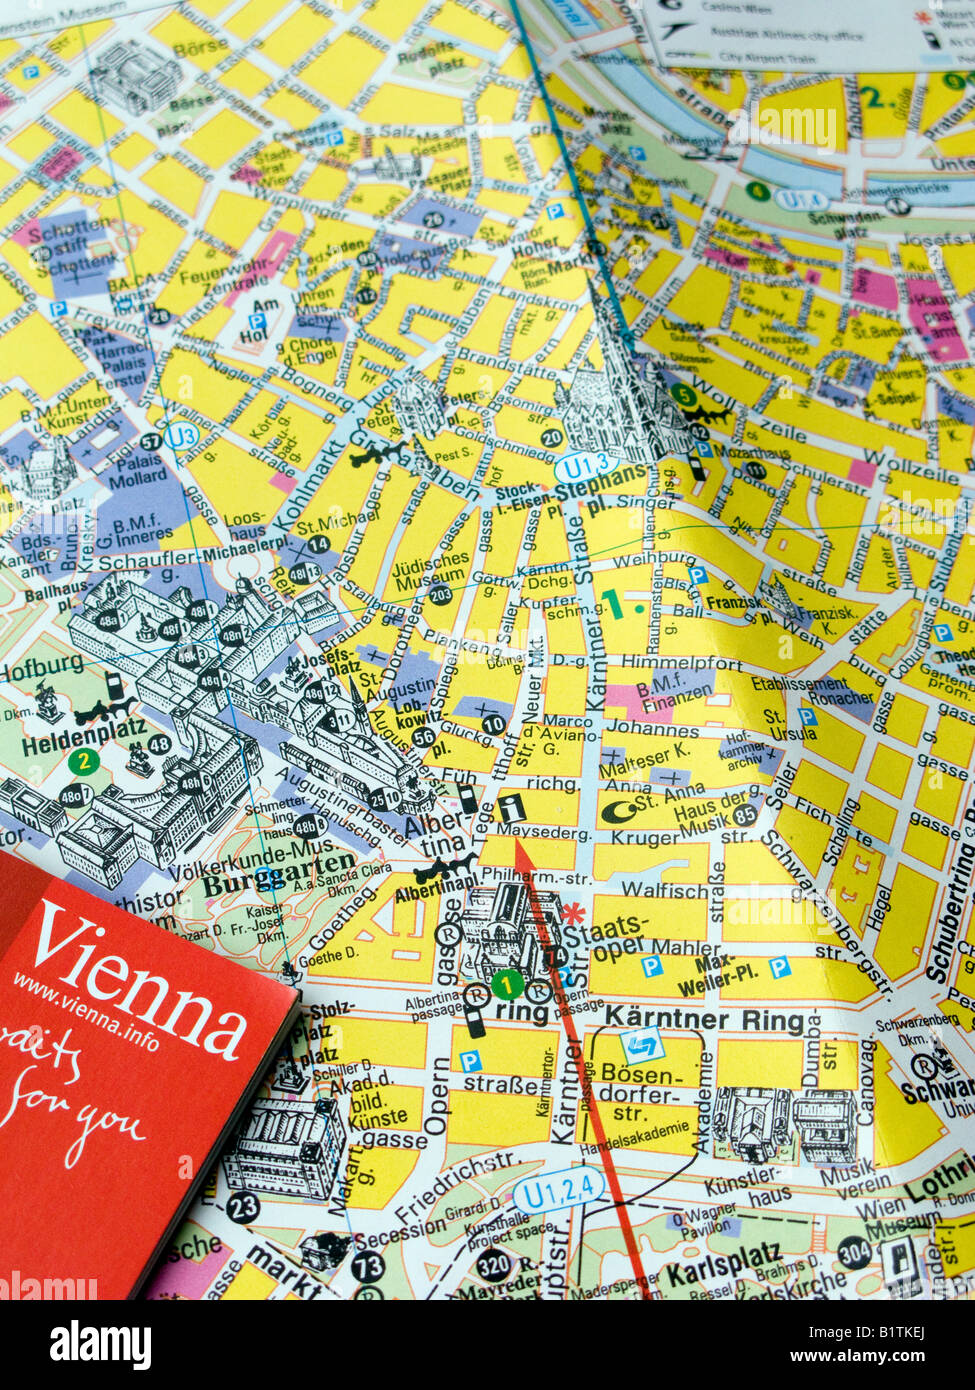 Map Of Vienna Photos and Map Of Vienna Images Alamy – Tourist Map Of Vienna Austria